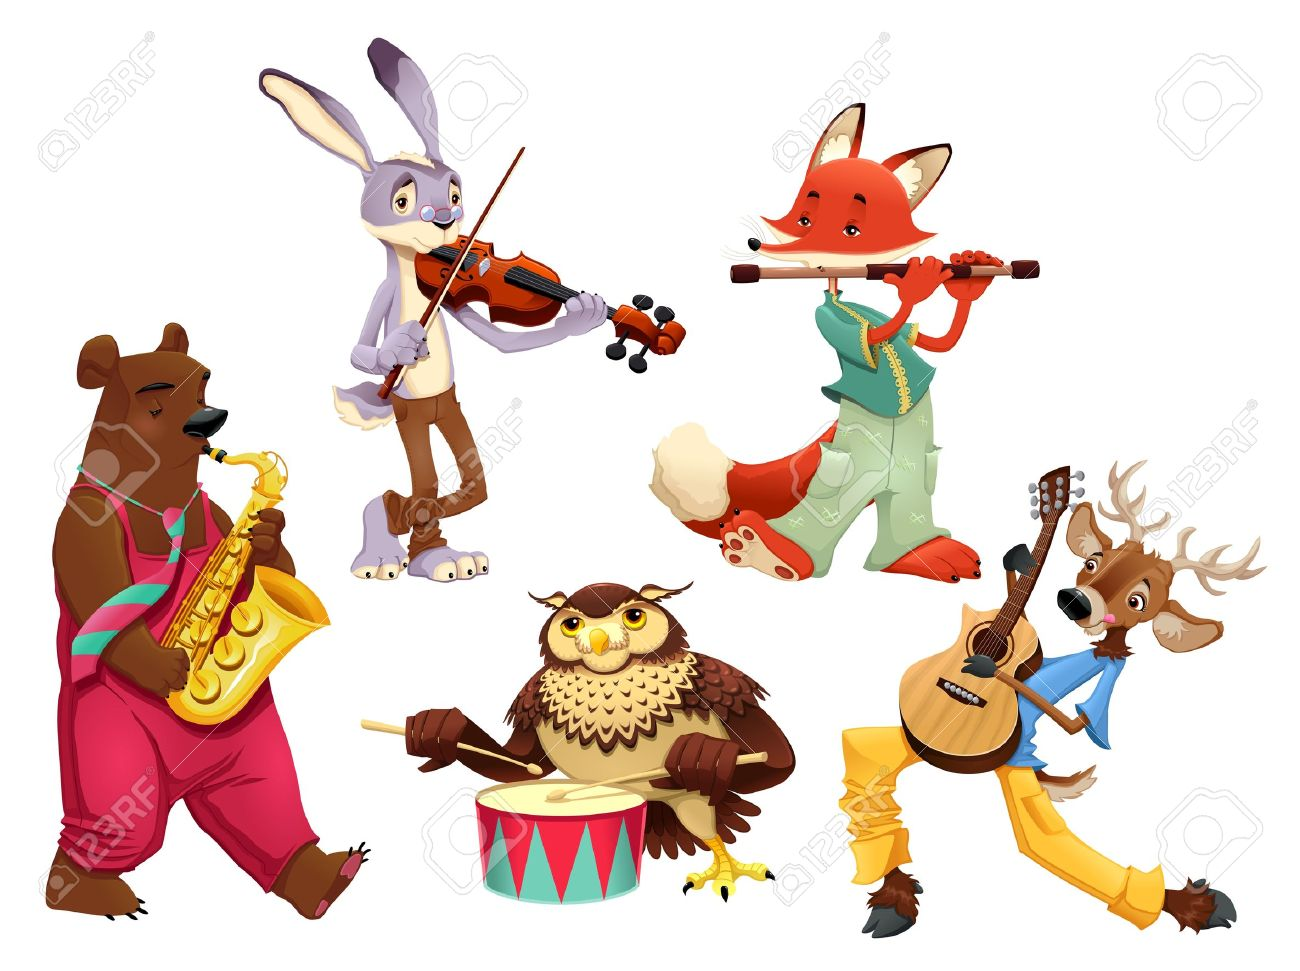 Musician animals. Cartoon and isolated characters. Stock Vector - 17745254